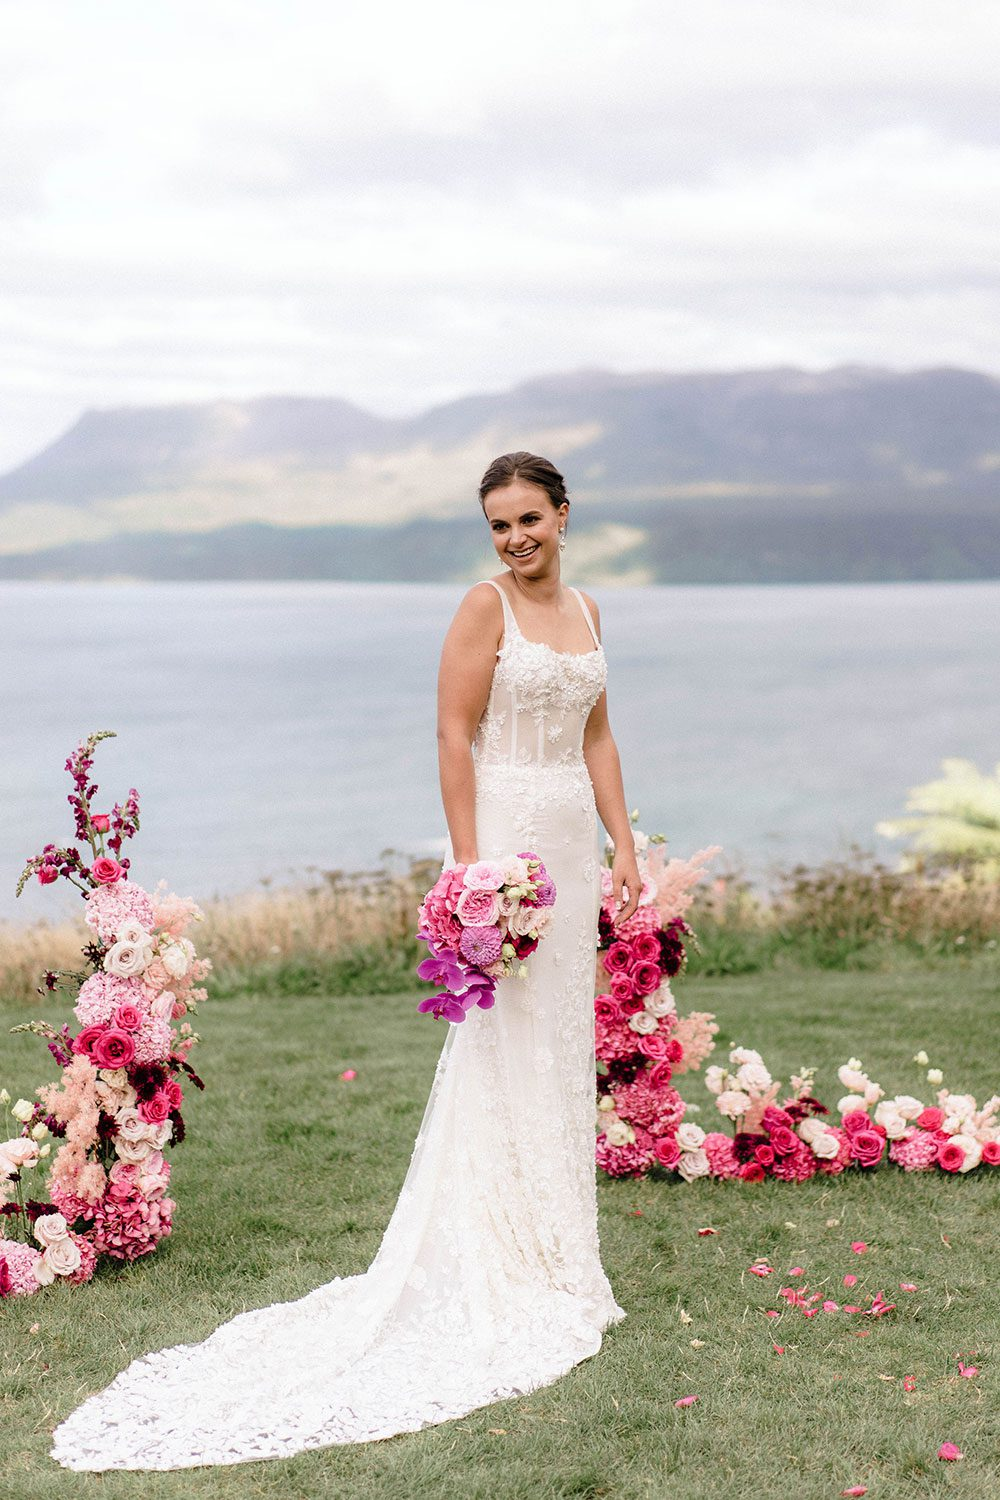 Bride wears bespoke E'More lace gown with boned bodice with hand beaded flower applique and full lace train by Auckland wedding dress maker Vinka designs - holding bouquet at alter